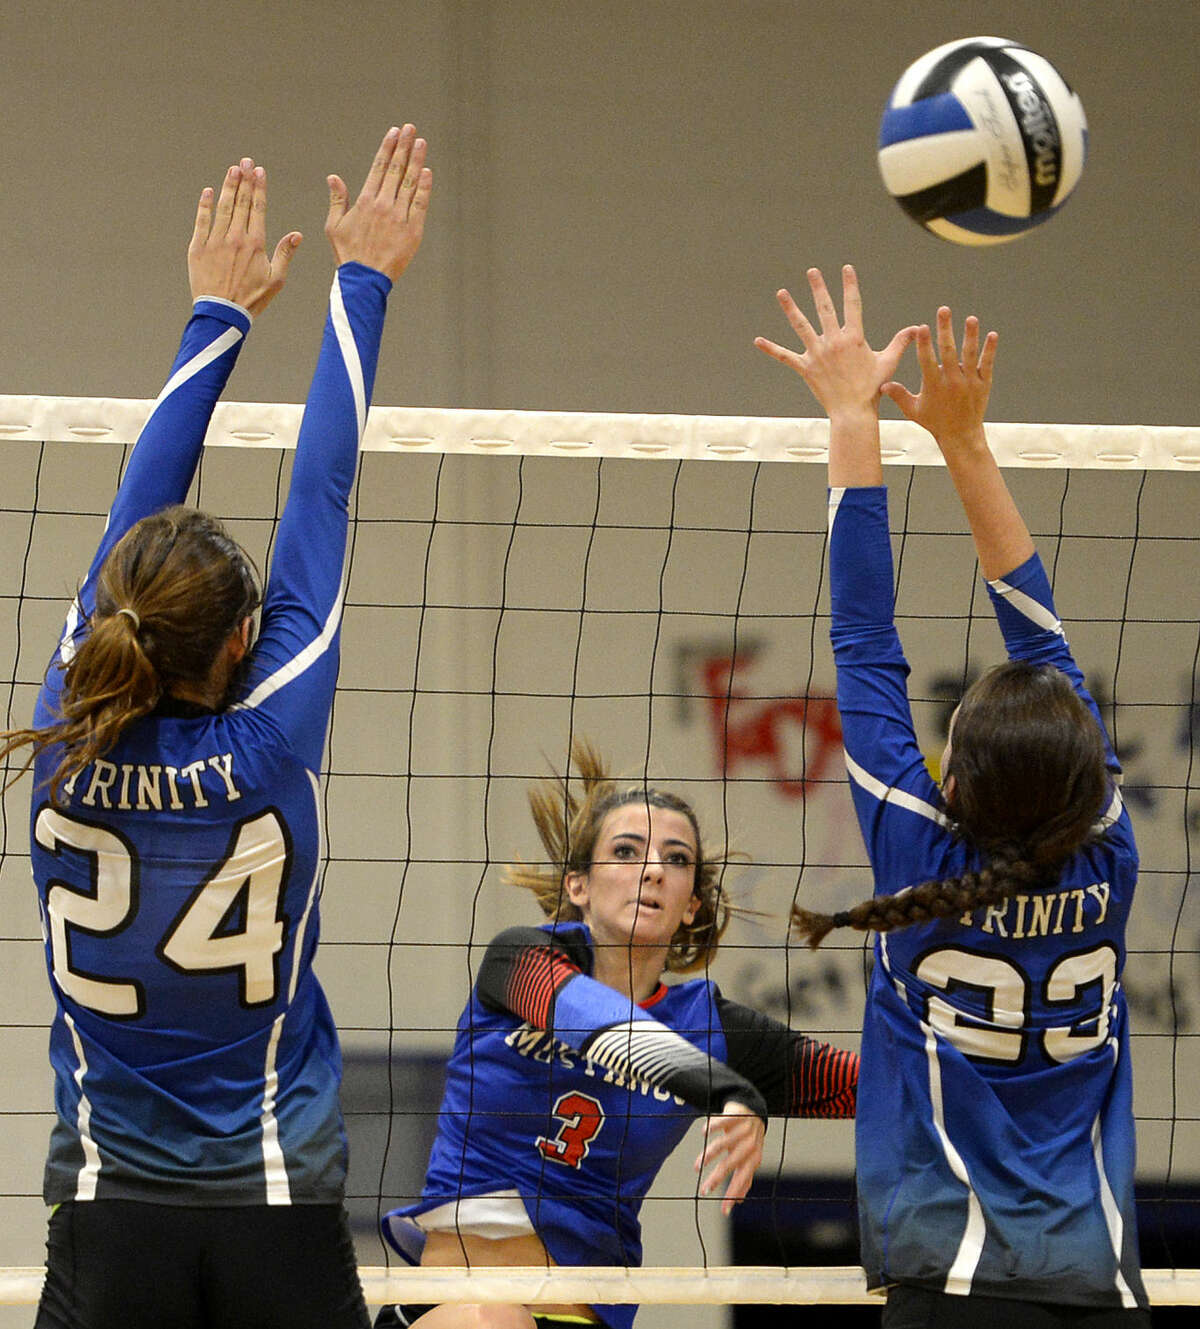 Midland Christian's Kenzie Pullen (3) hits past Trinity's Callie Herd (24) and Hilary Lanier (23) on Tuesday, August 11, 2015 at Beal Gymnasium. James Durbin/Reporter-Telegram